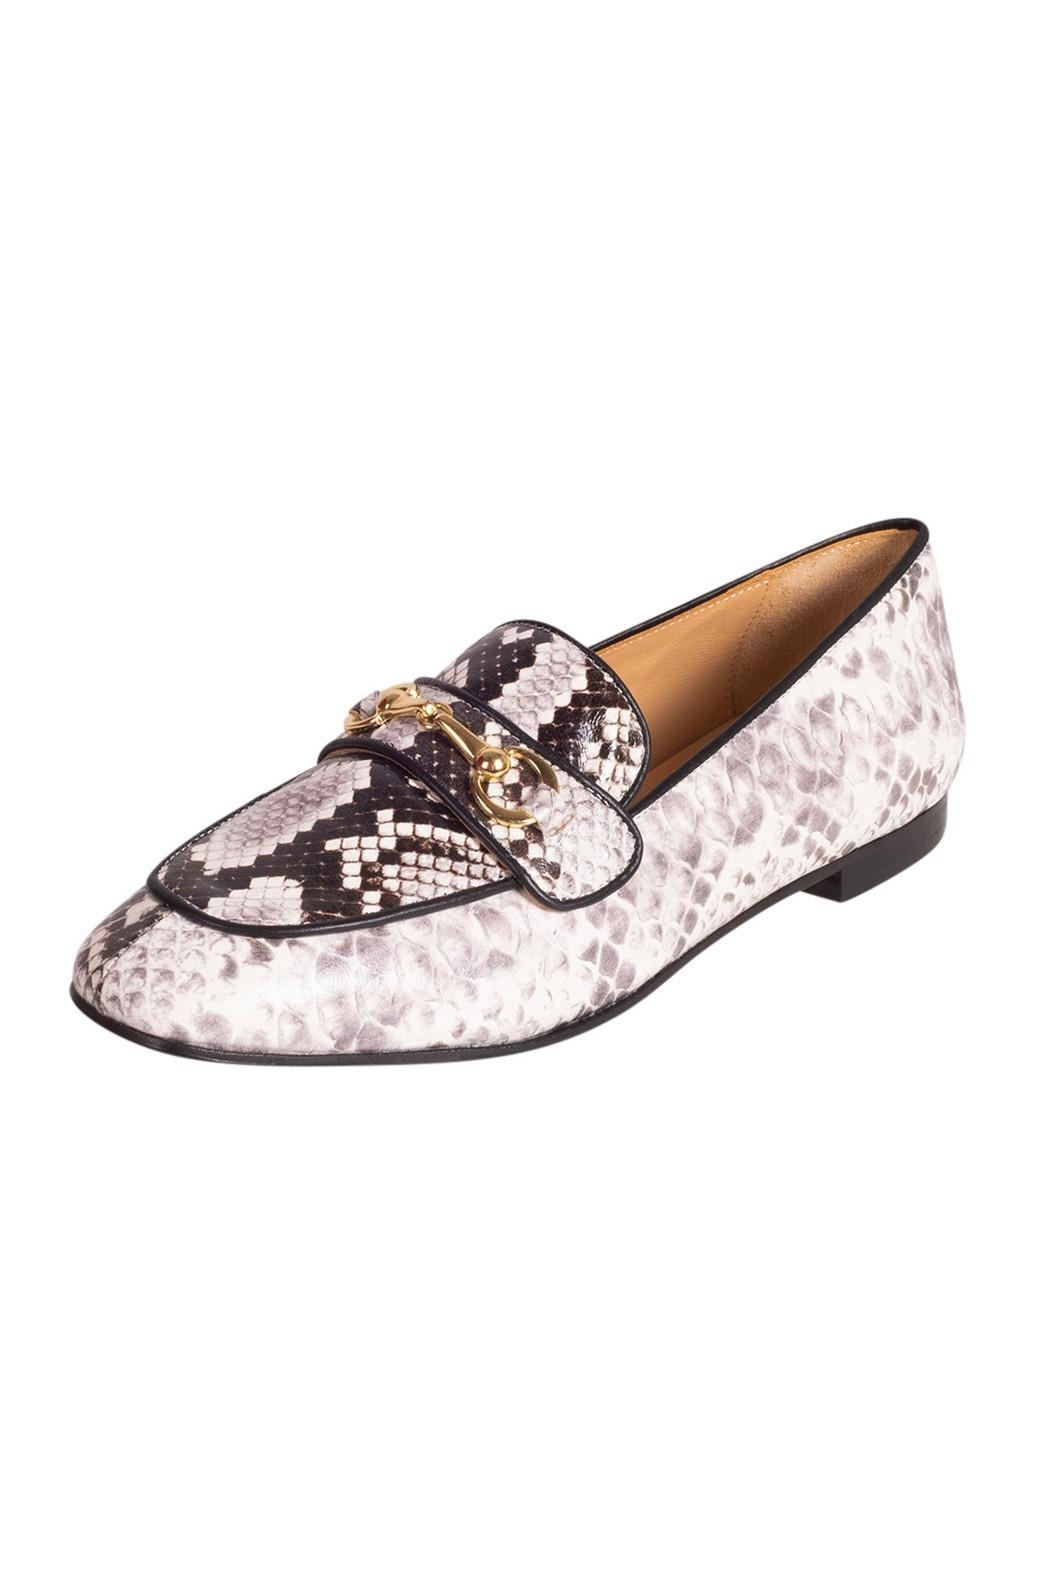 Pascucci Snakeskin Print Loafer - Front Full Image